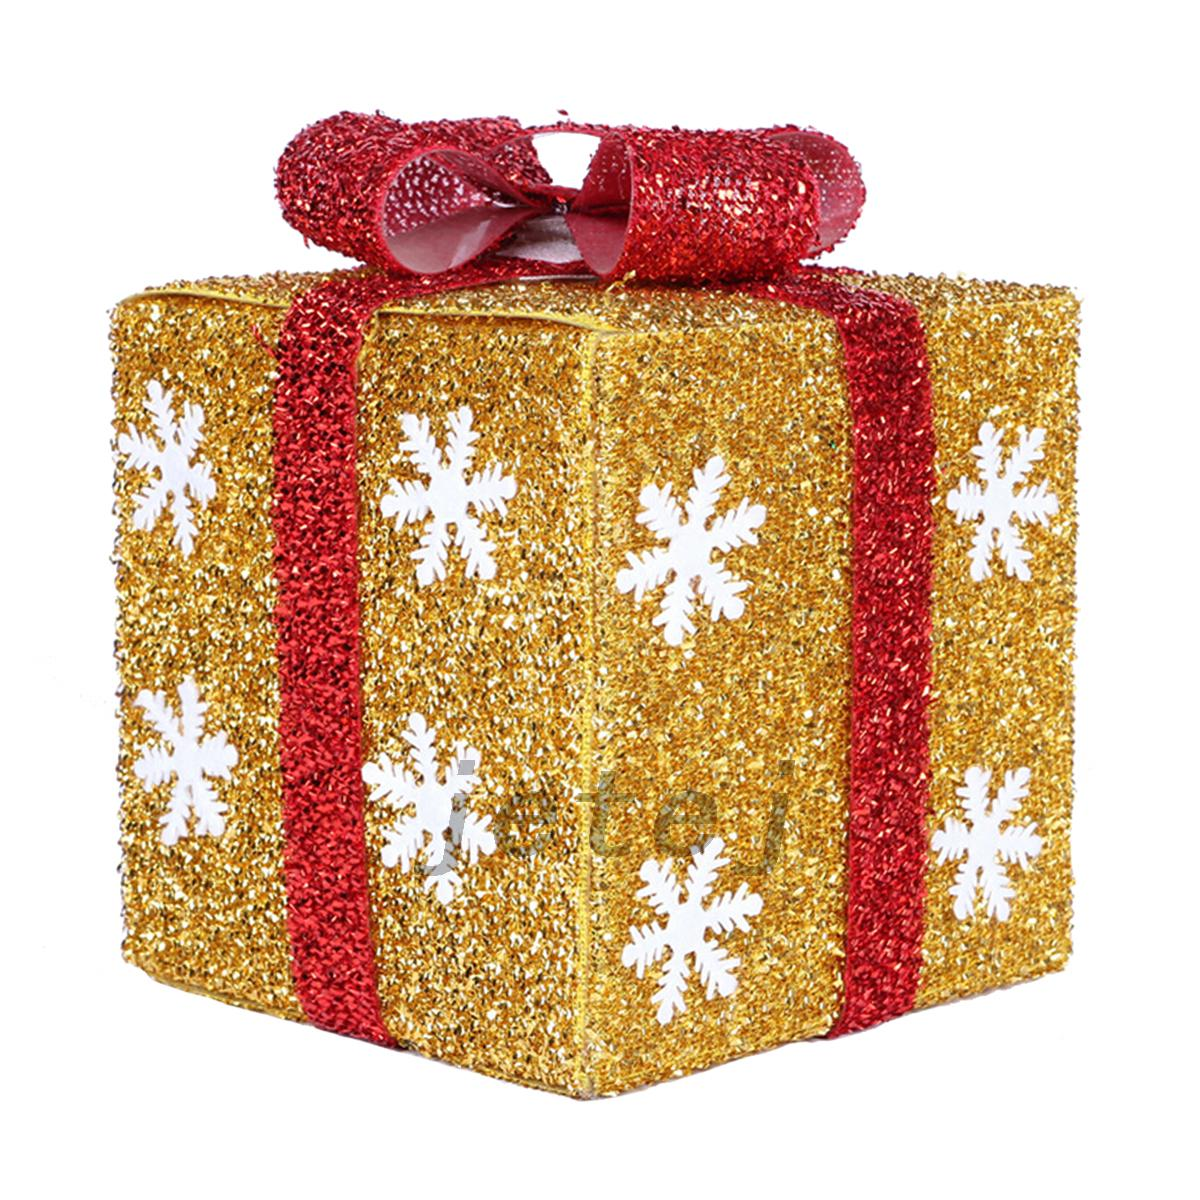 Gift Box Christmas Decorations: Party Decor Xmas Gift Boxes Christmas Present Packing